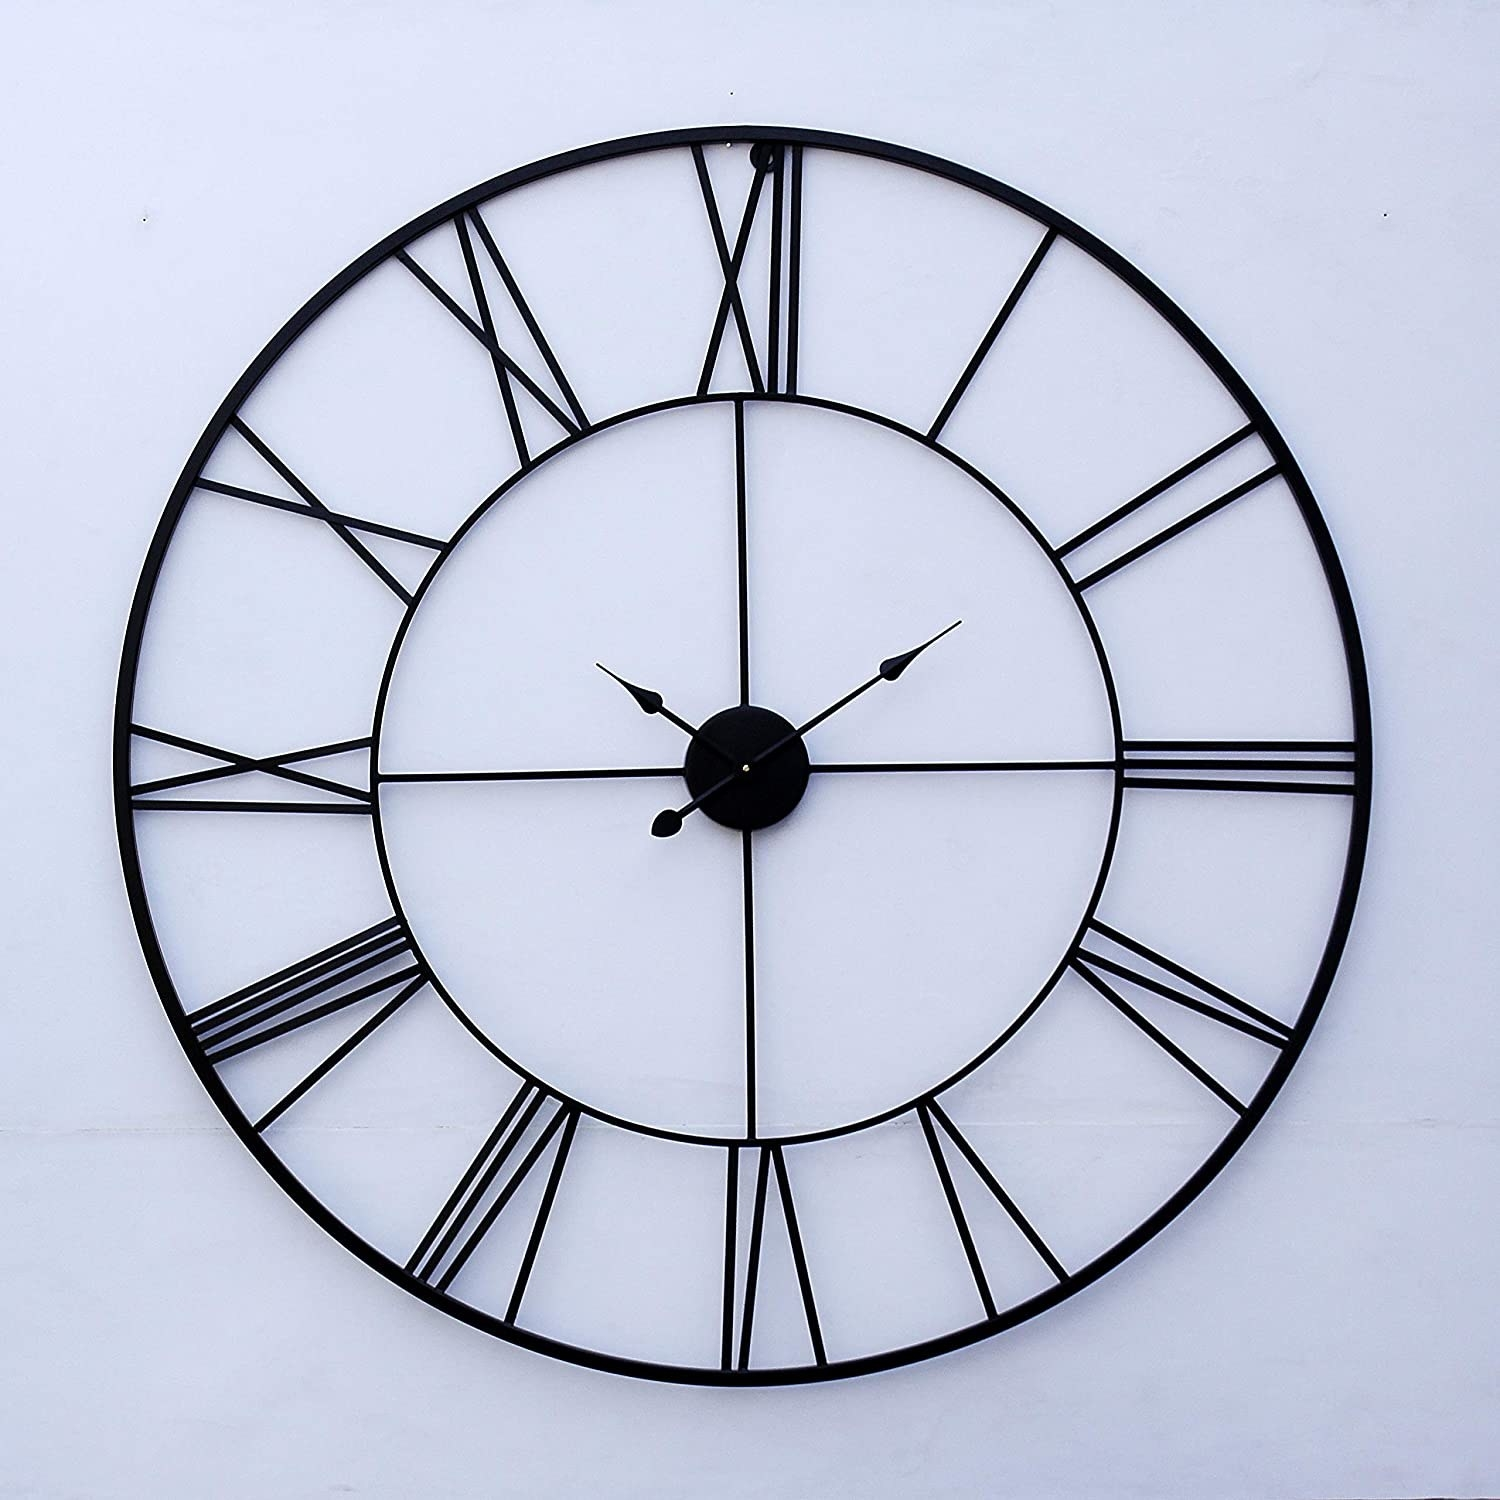 A black wall clock with Roman numerals.